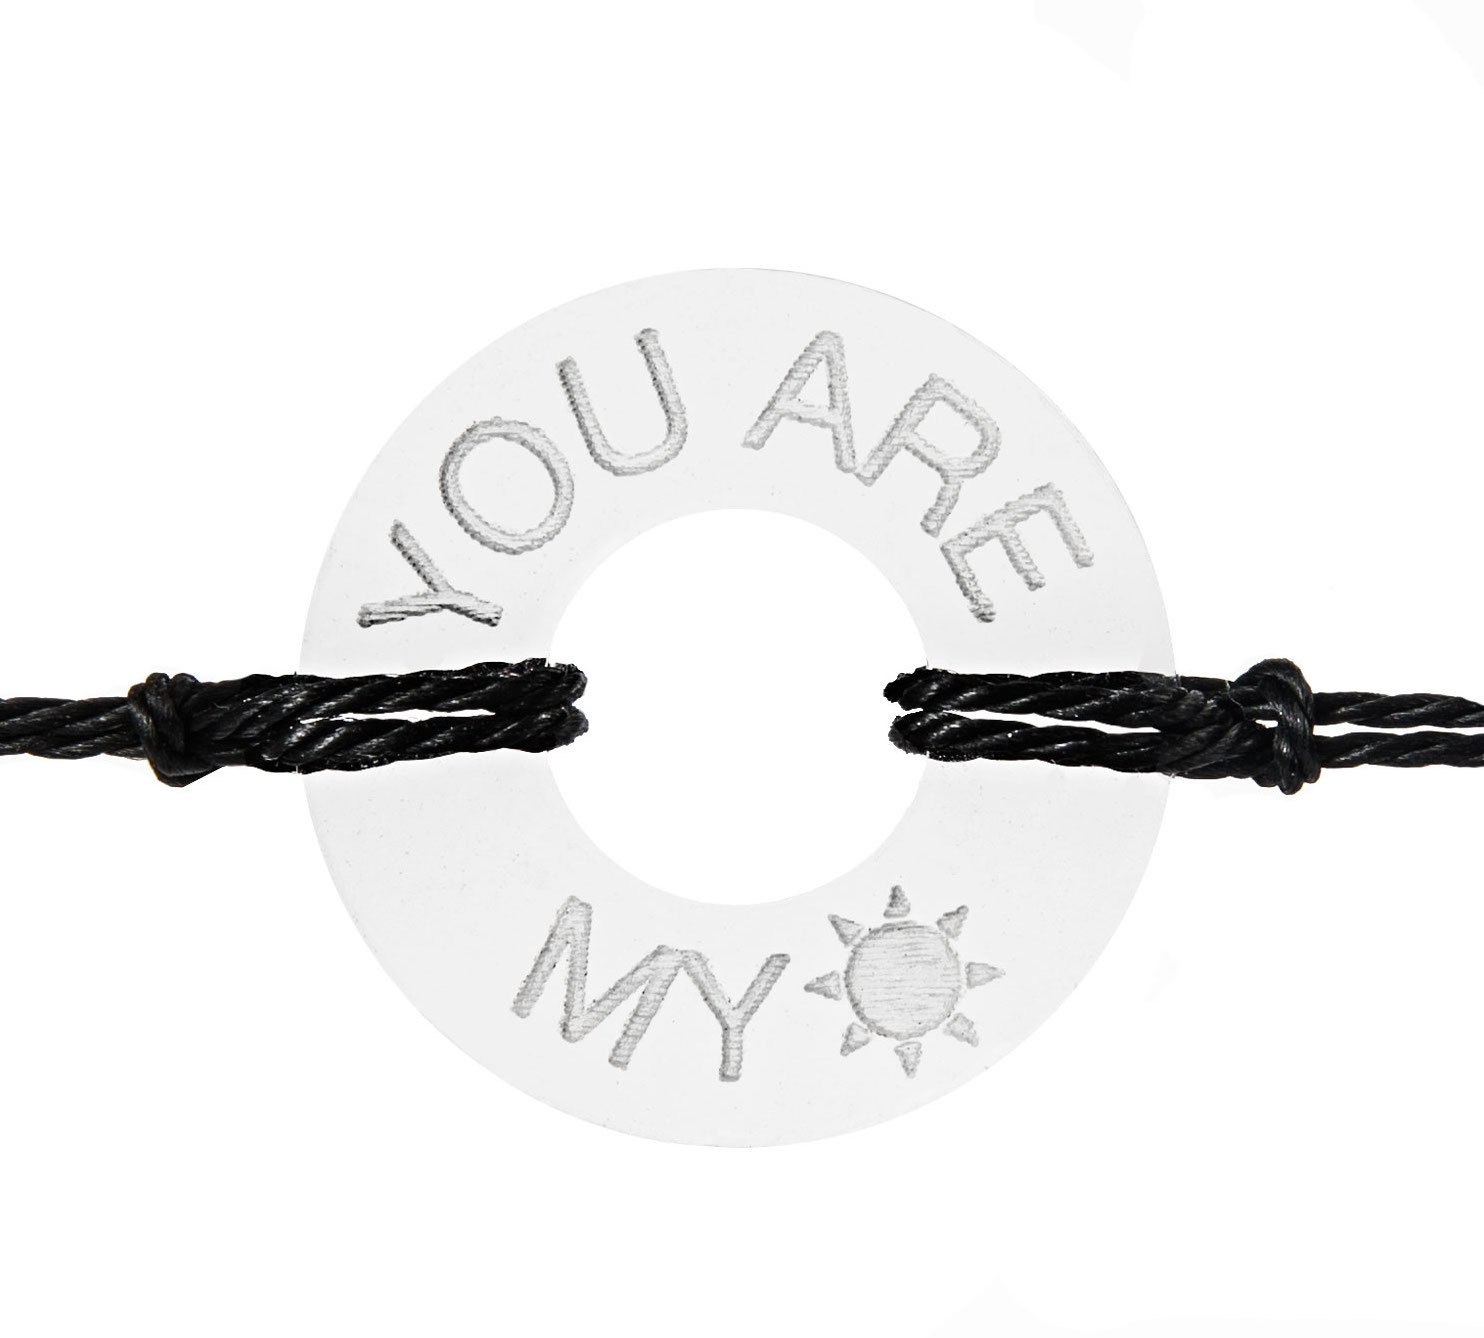 LIFE TOKEN Custom Handmade Personalized engraved Message You Are My Sunshine Novelty Jewelry Bracelet For Both Men and Women (Clear Token with Black String)